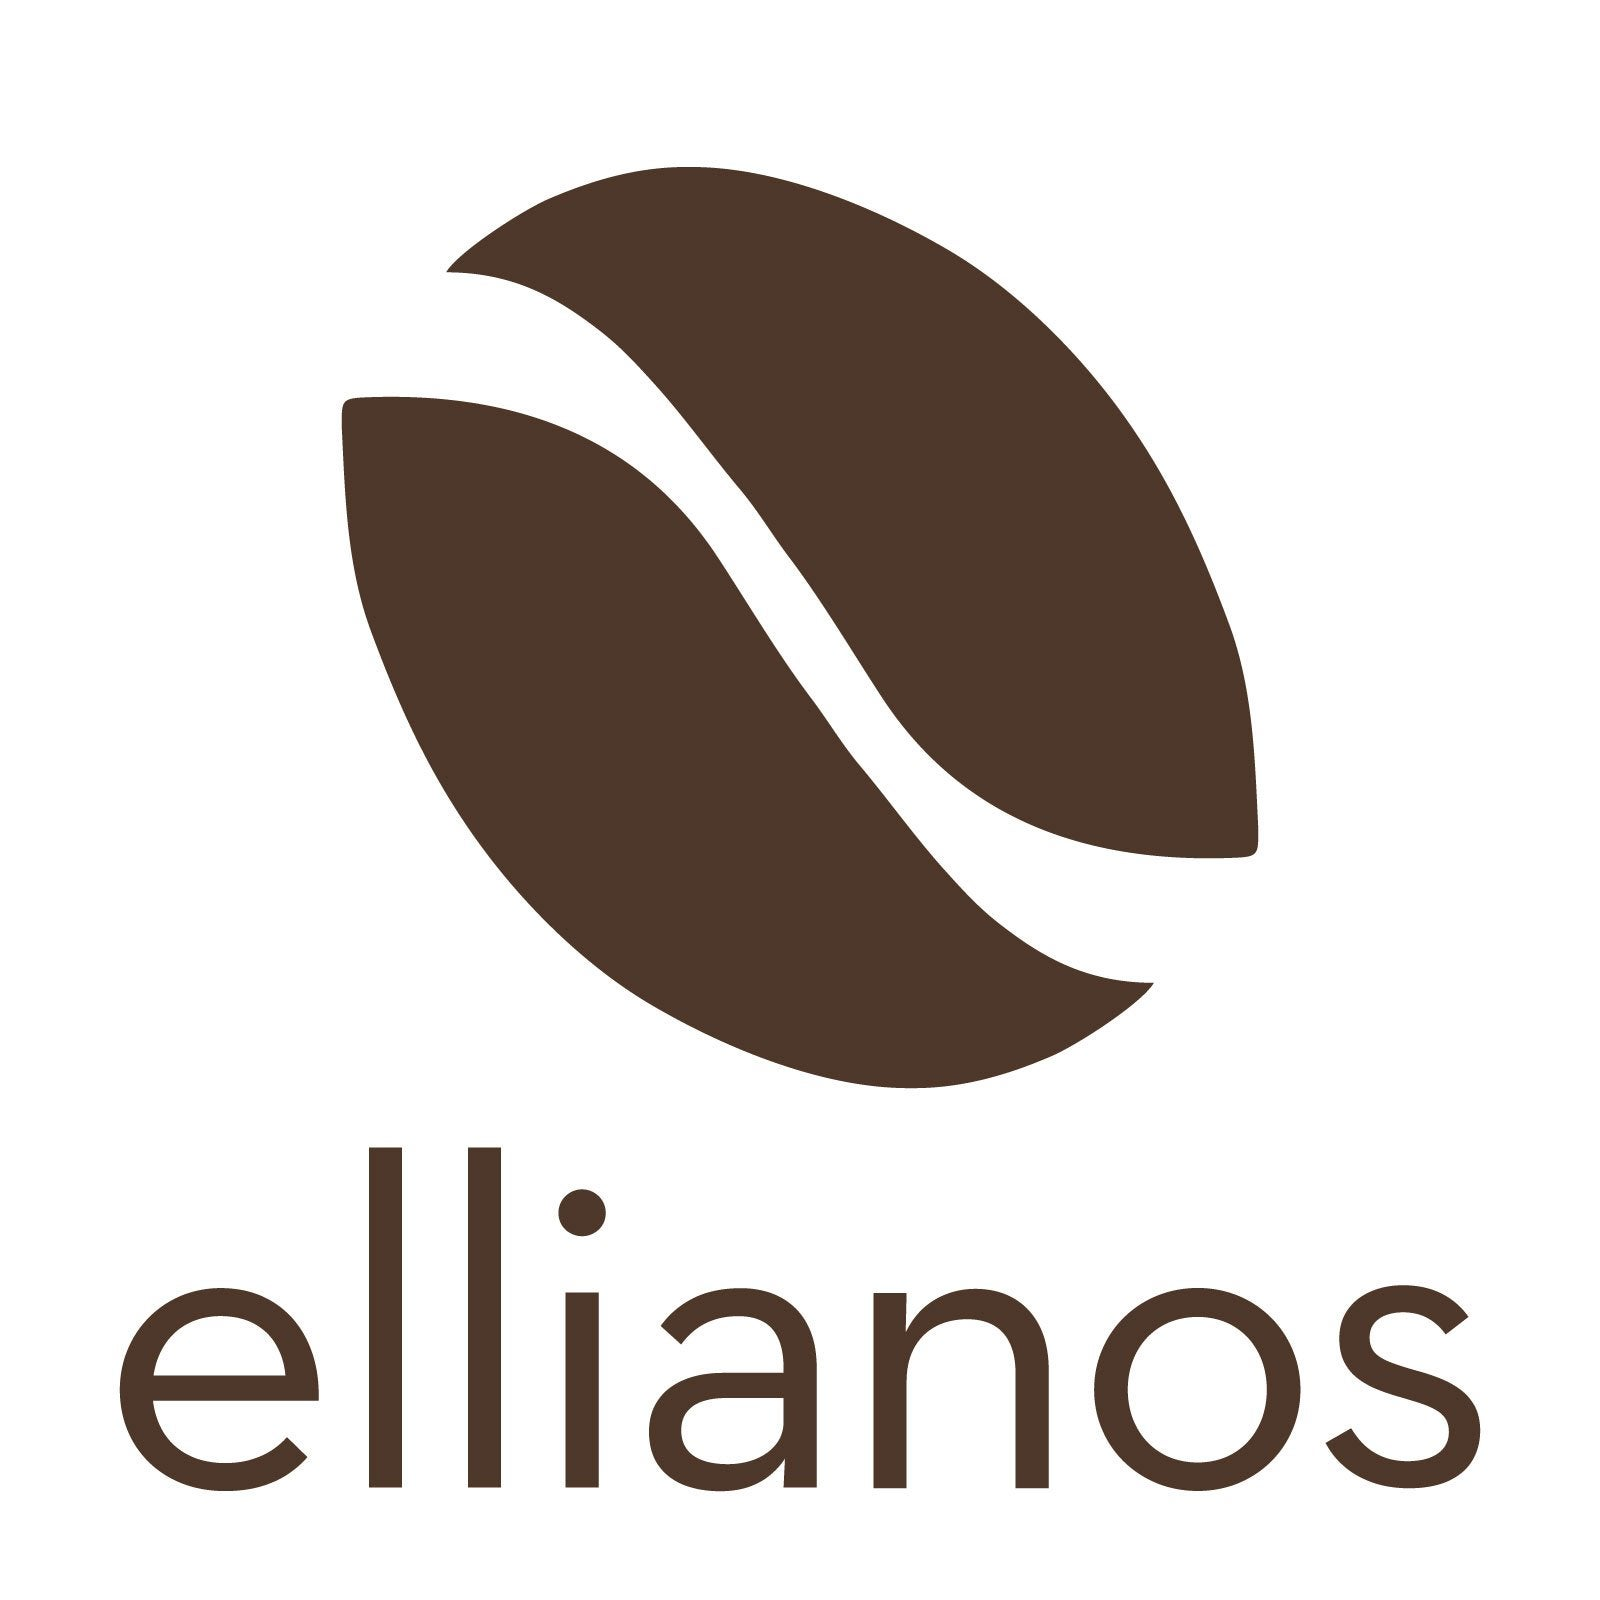 Ellianos Coffee Company